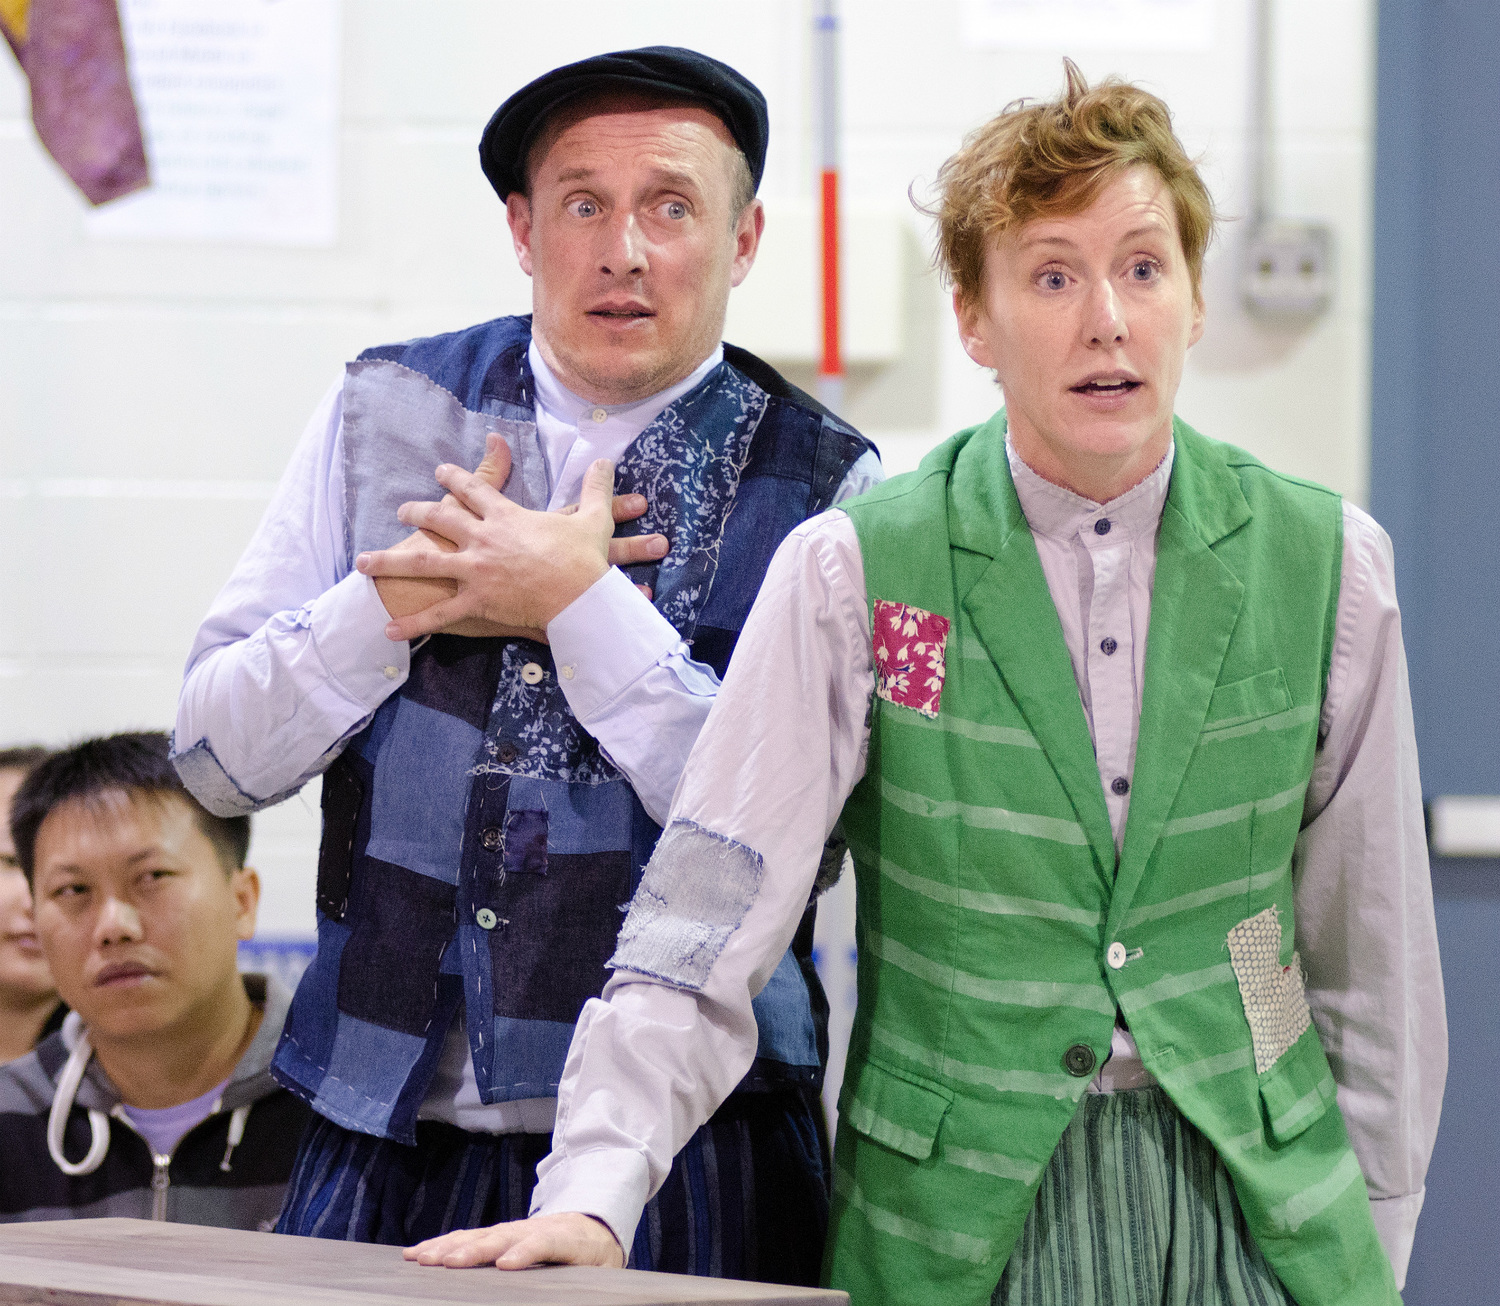 BWW Review: Funny and Accessible SCAPIN at Ten Thousand Things